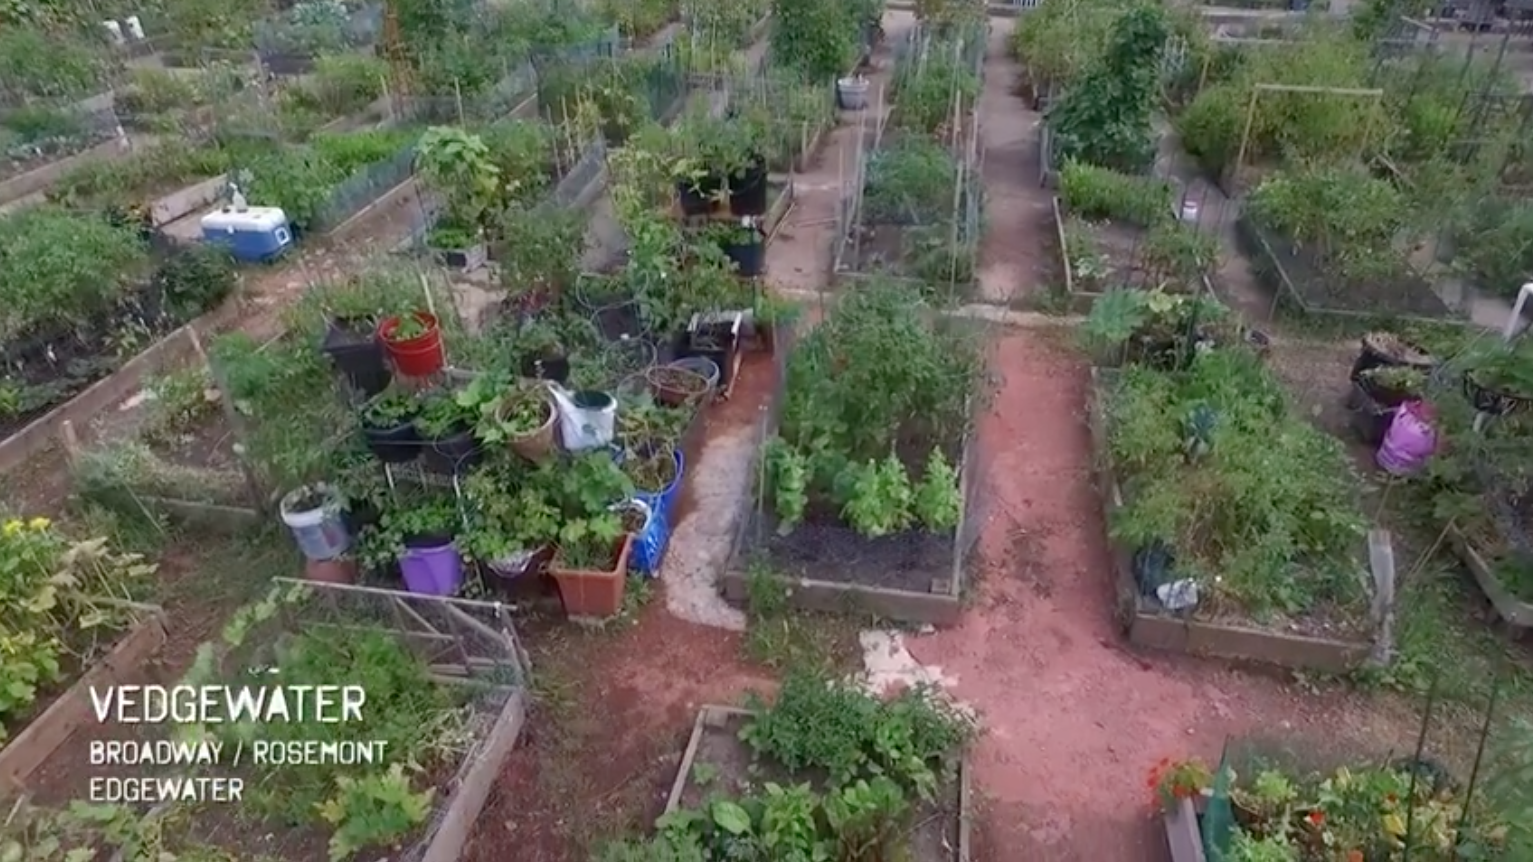 Learn To Grow Your Own Food Organically With Peterson Garden Project This  Year. You Can Register To Be A Gardener At Our Areau0027s Closest Garden U2013  Vedgewater ...